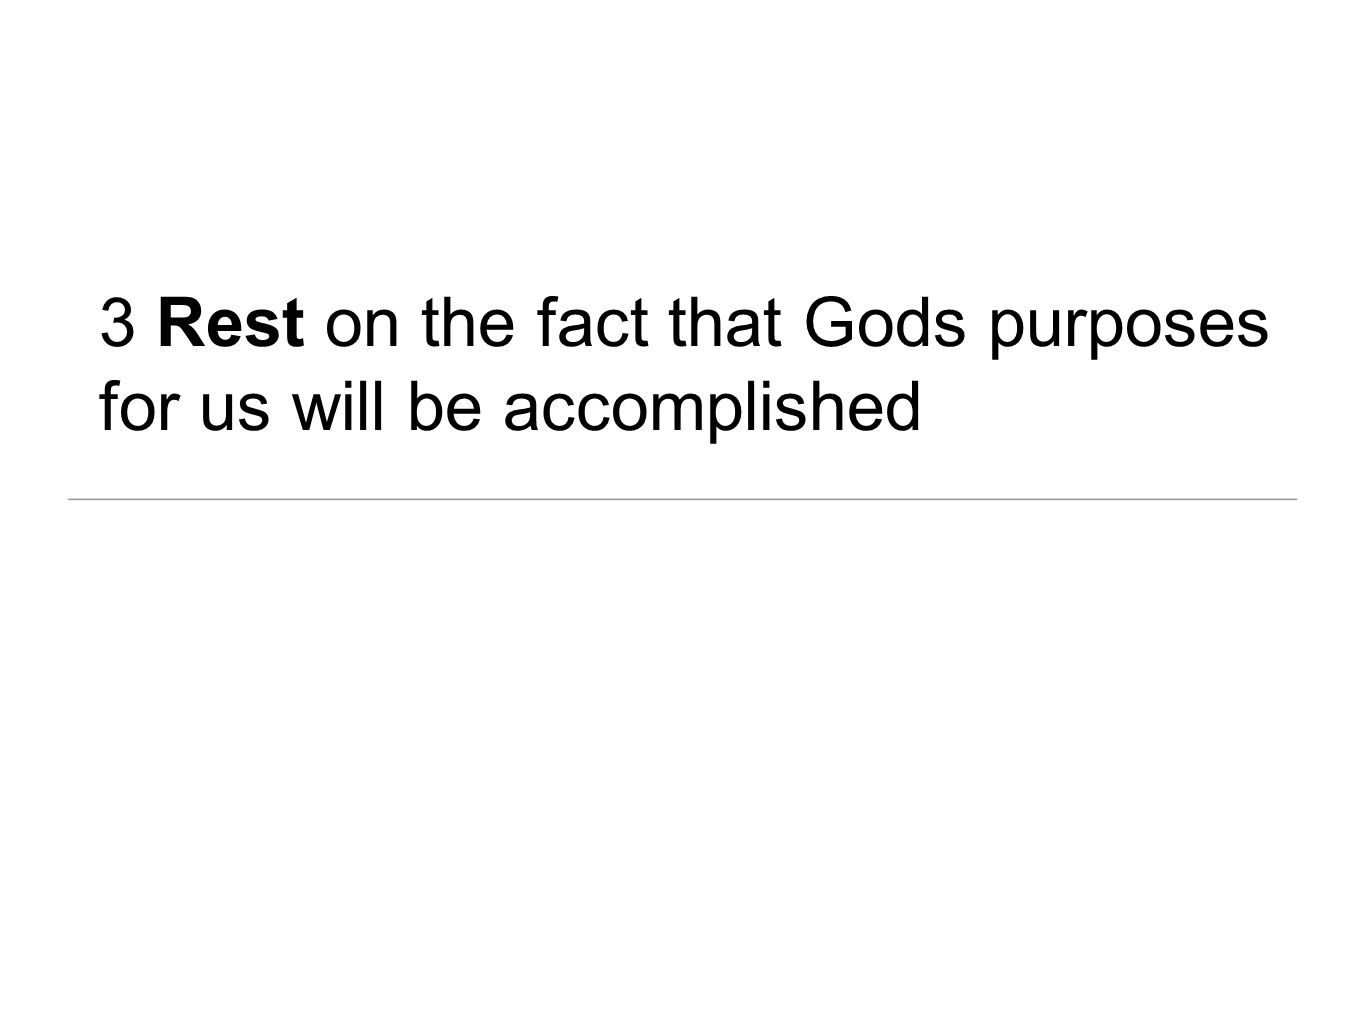 3 Rest on the fact that Gods purposes for us will be accomplished